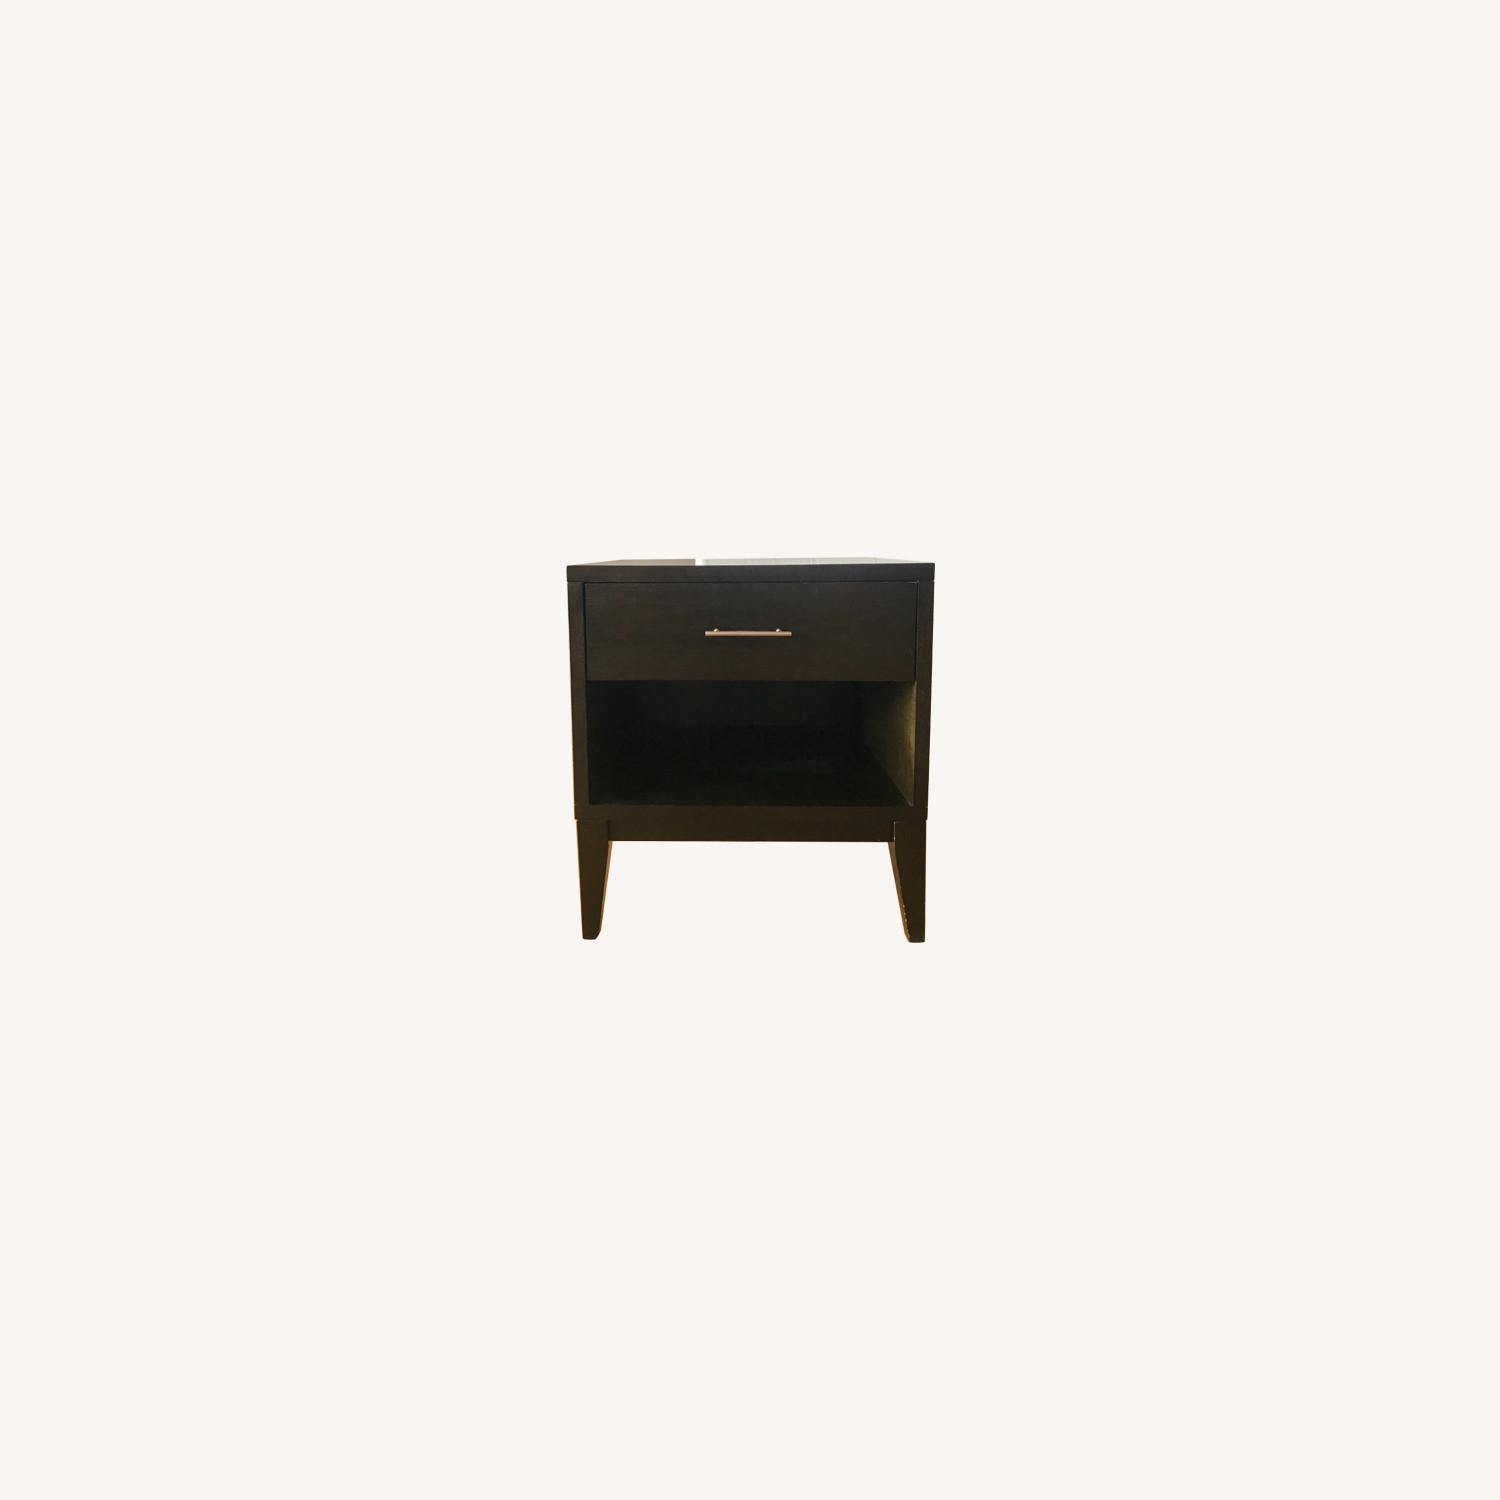 West Elm Chocolate Colored Side Table - image-0